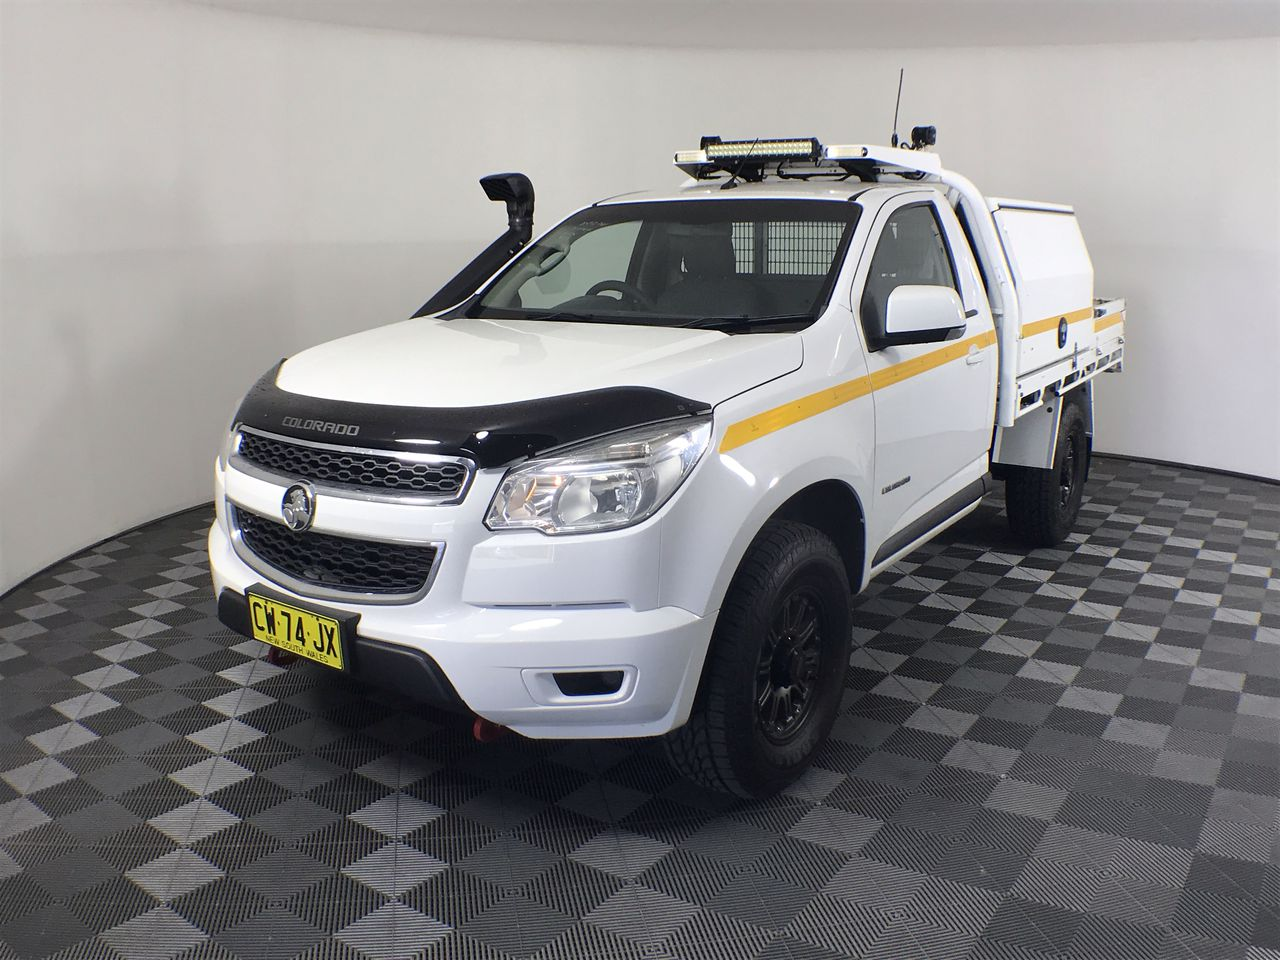 2015 Holden Colorado 4X2 LX RG Turbo Diesel Manual Cab Chassis